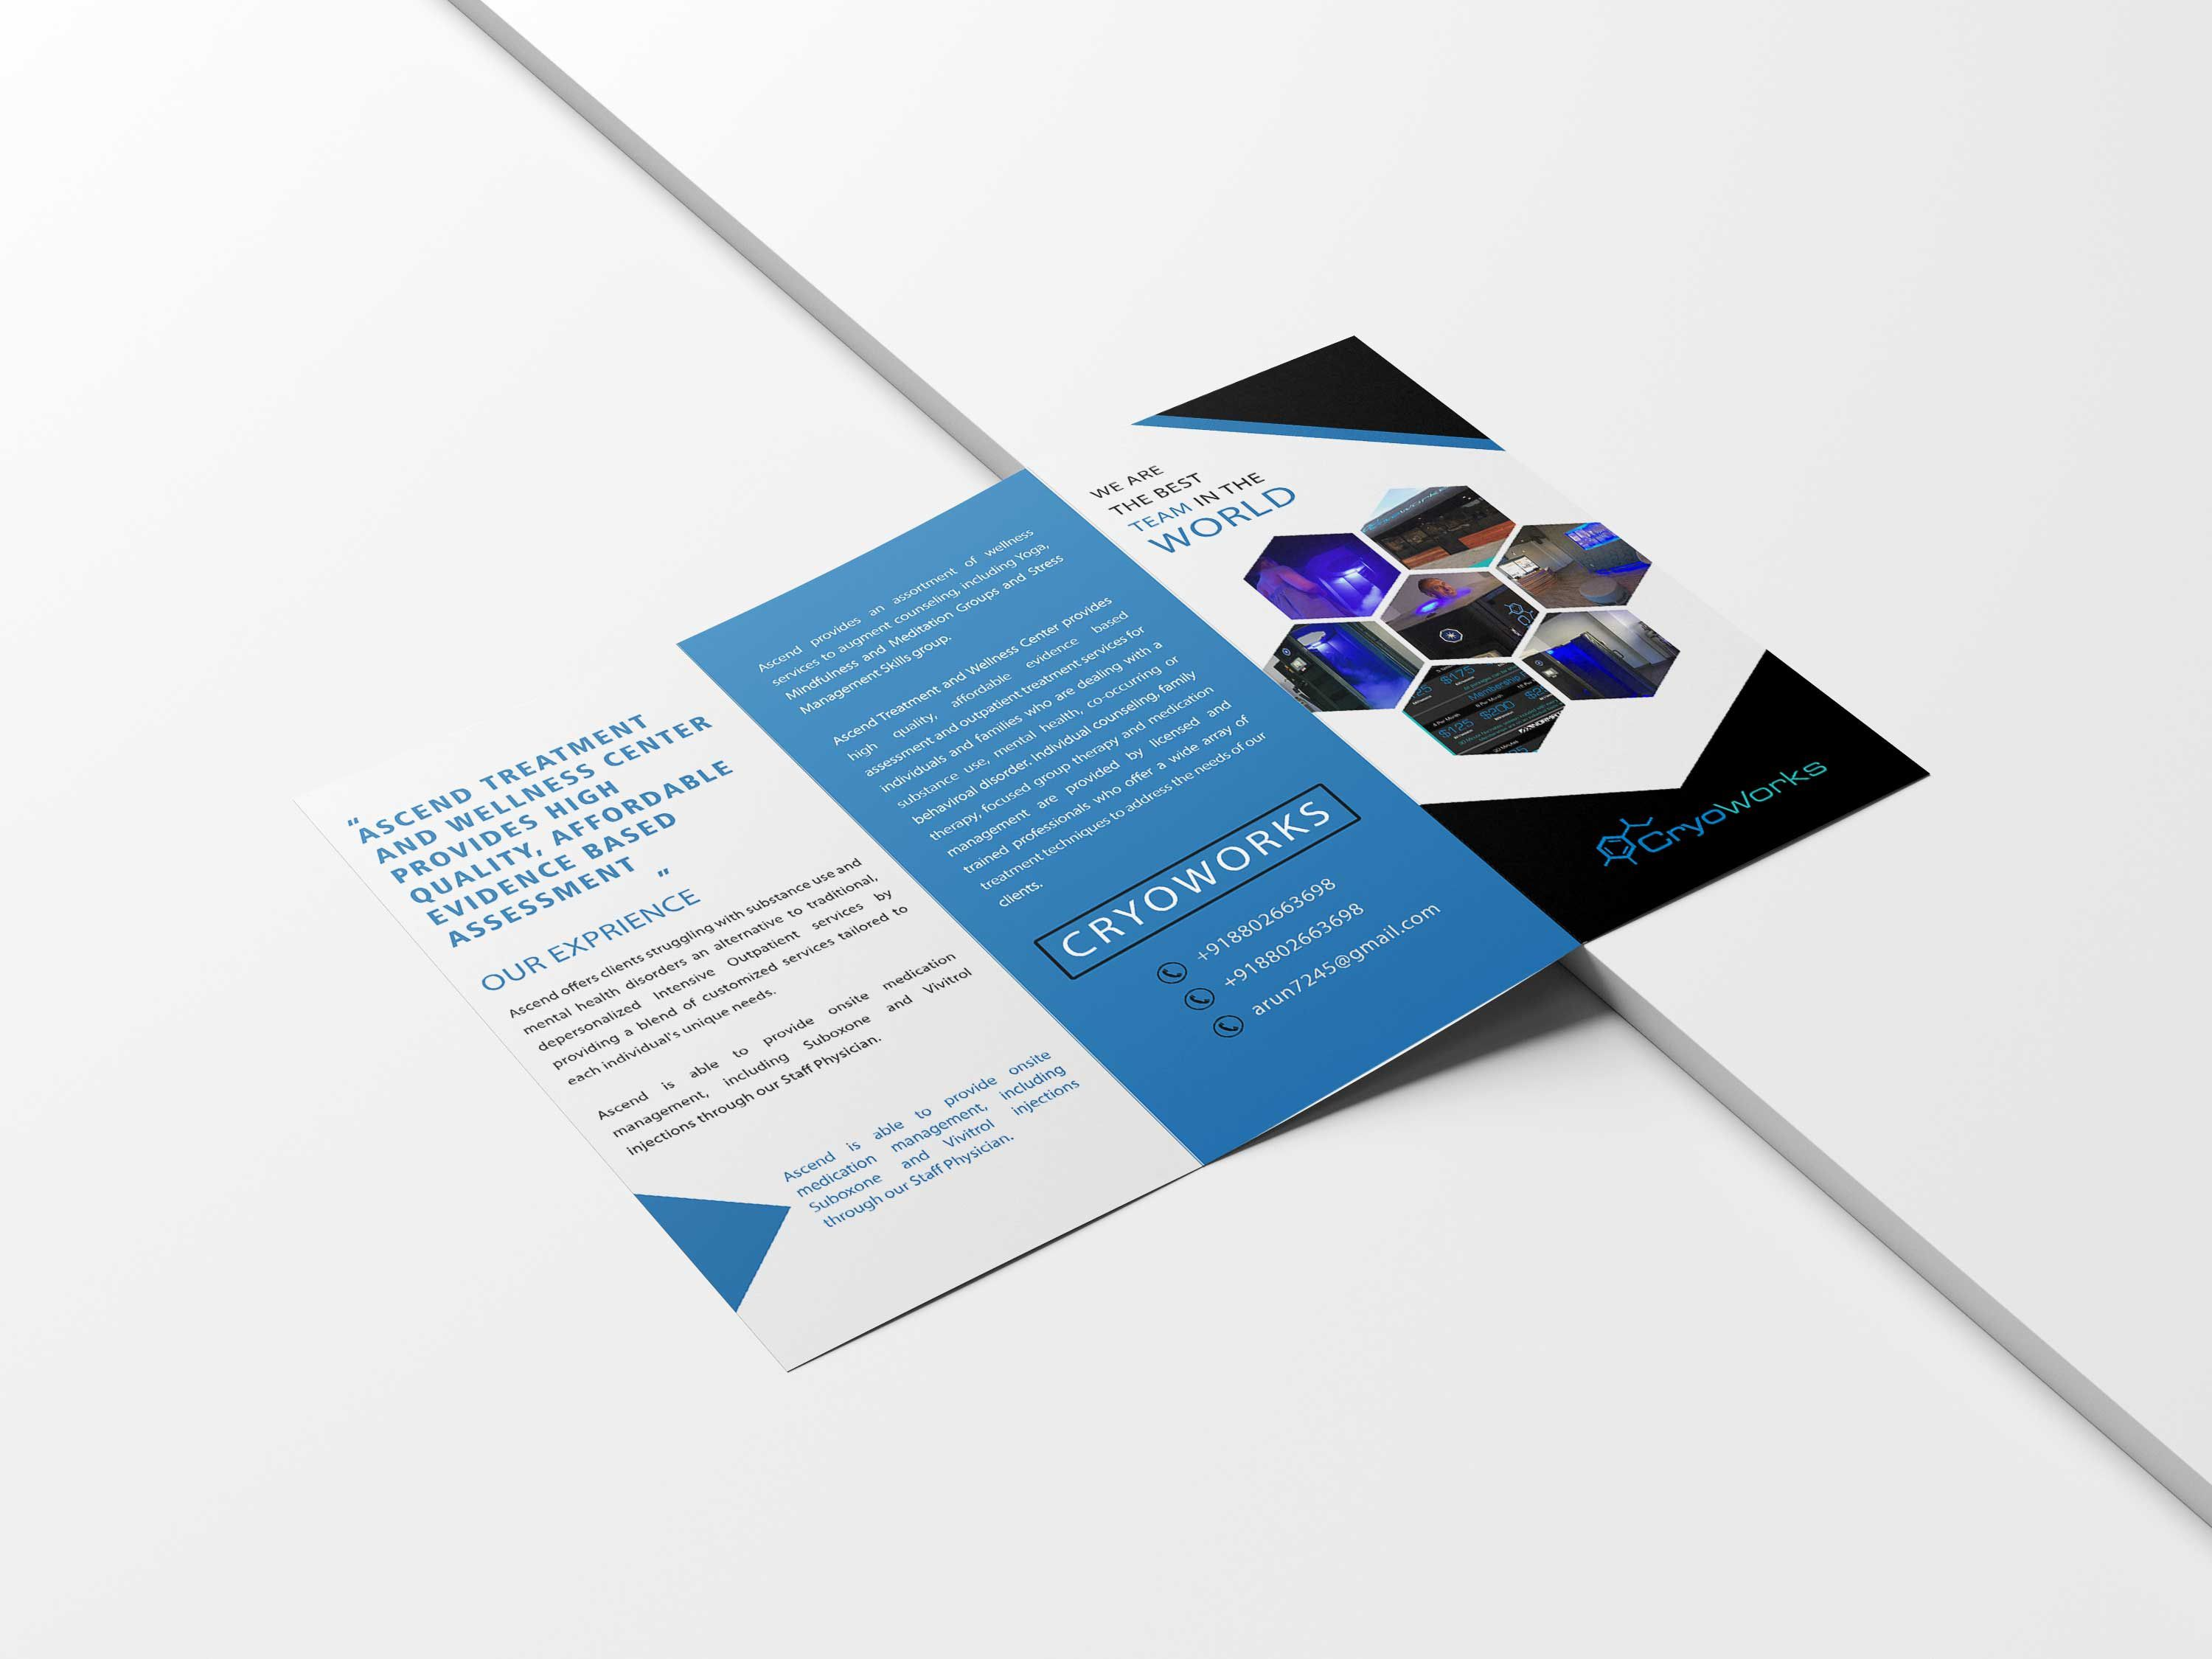 004 Top Photoshop Brochure Design Template Free Download Highest Clarity Full